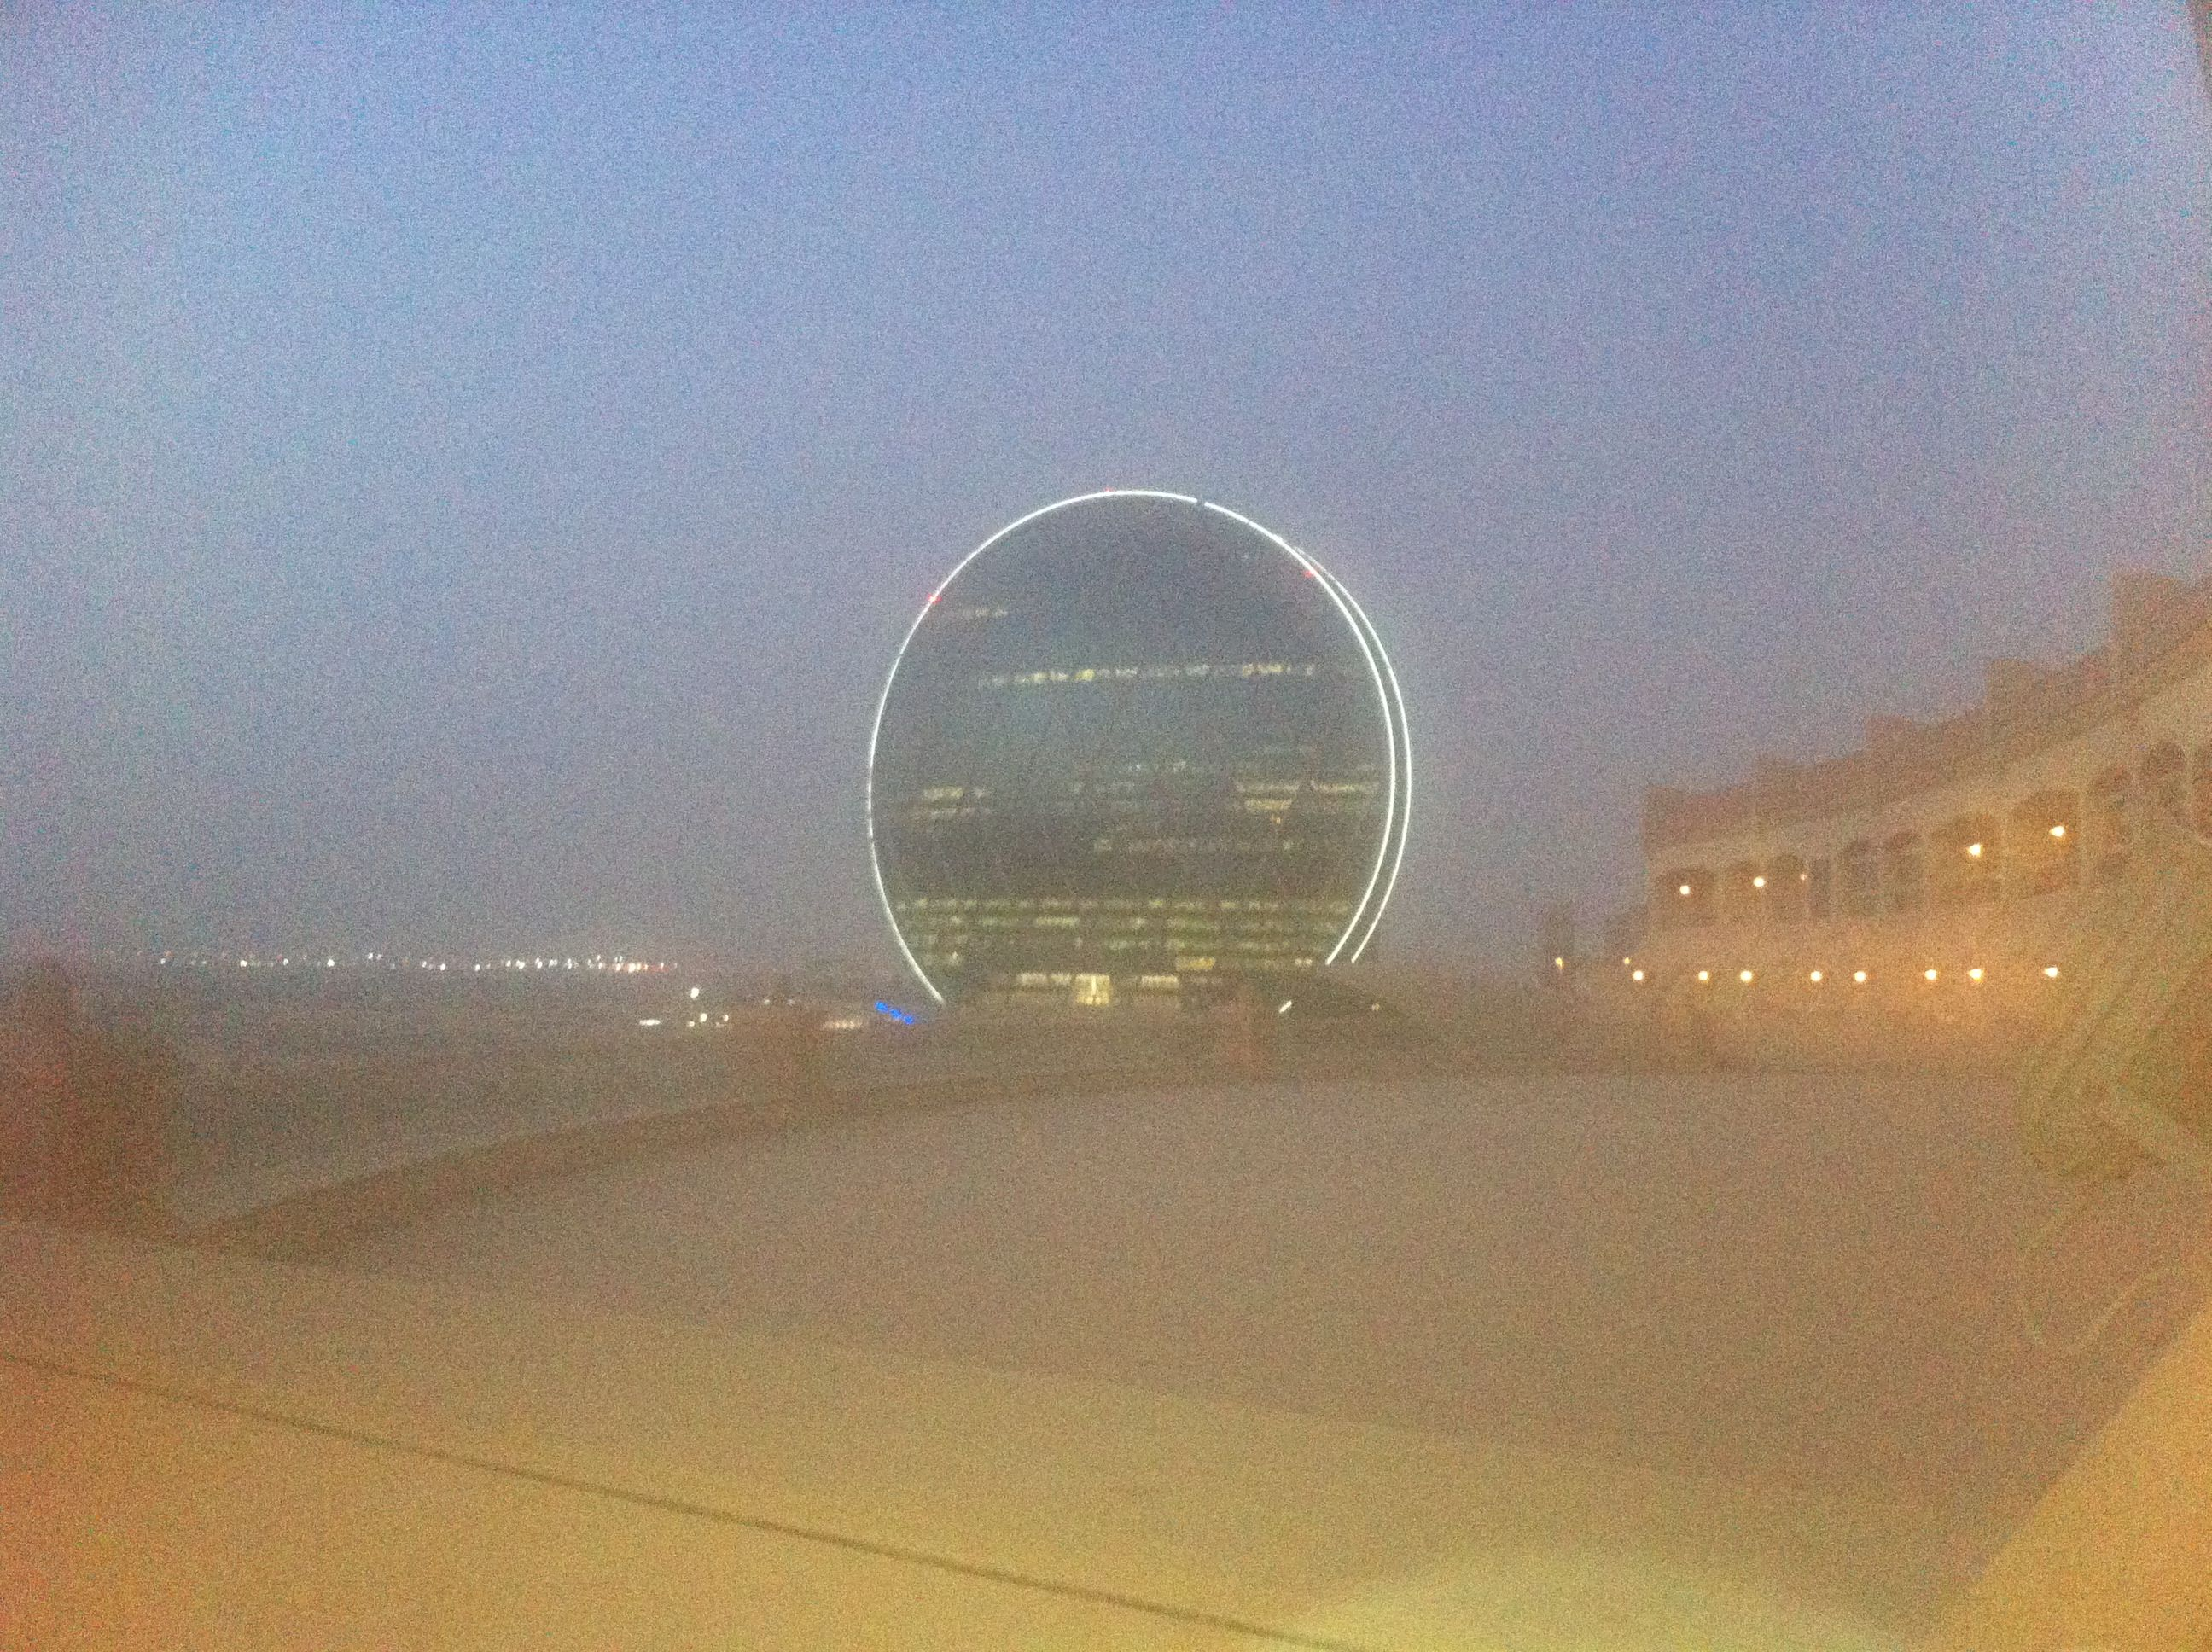 Love this building en route to Abu Dhabi